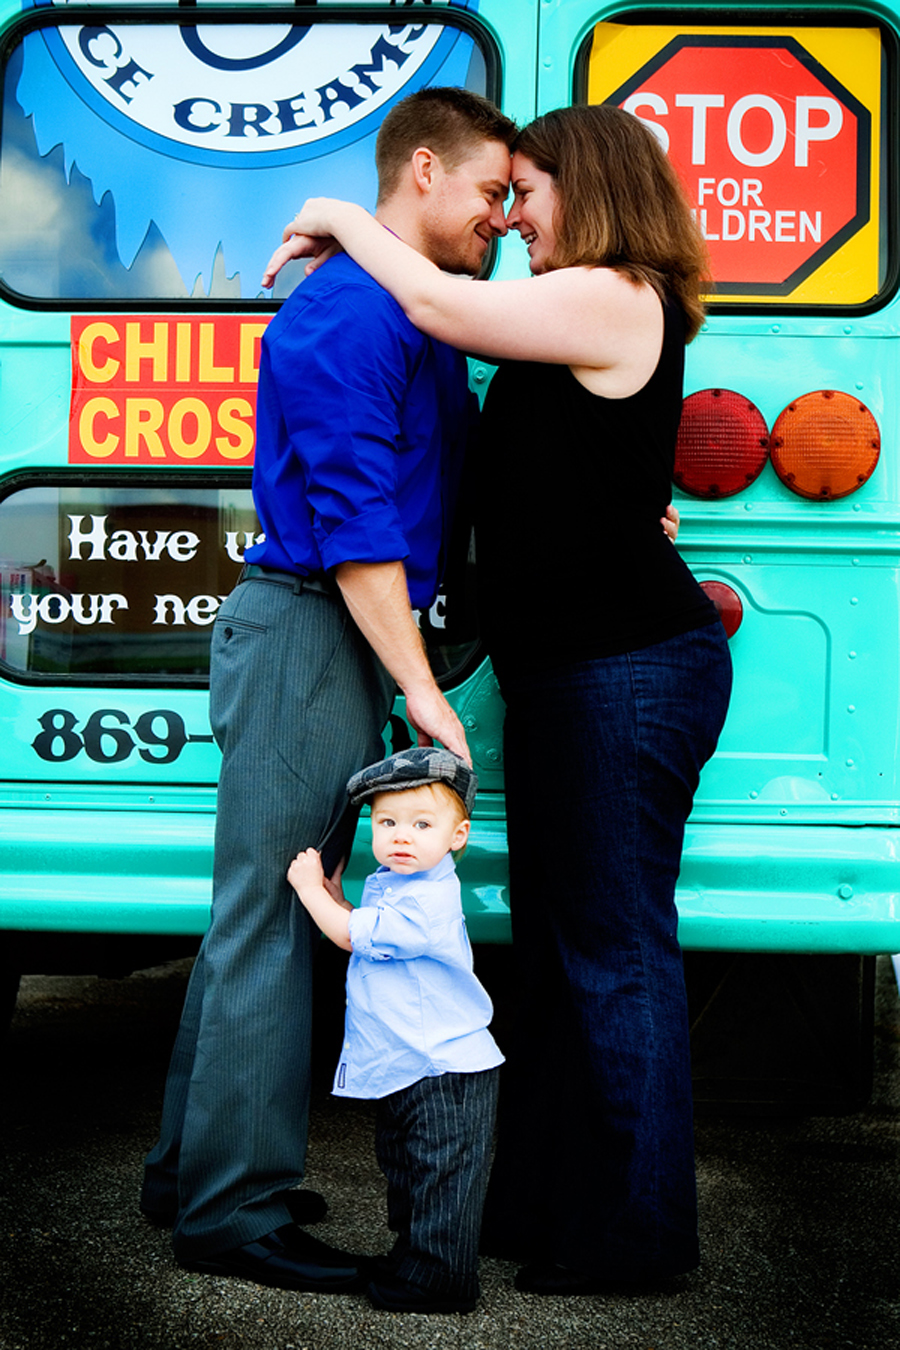 fun_family_photography_austin_texas_lifestyle_23.jpg